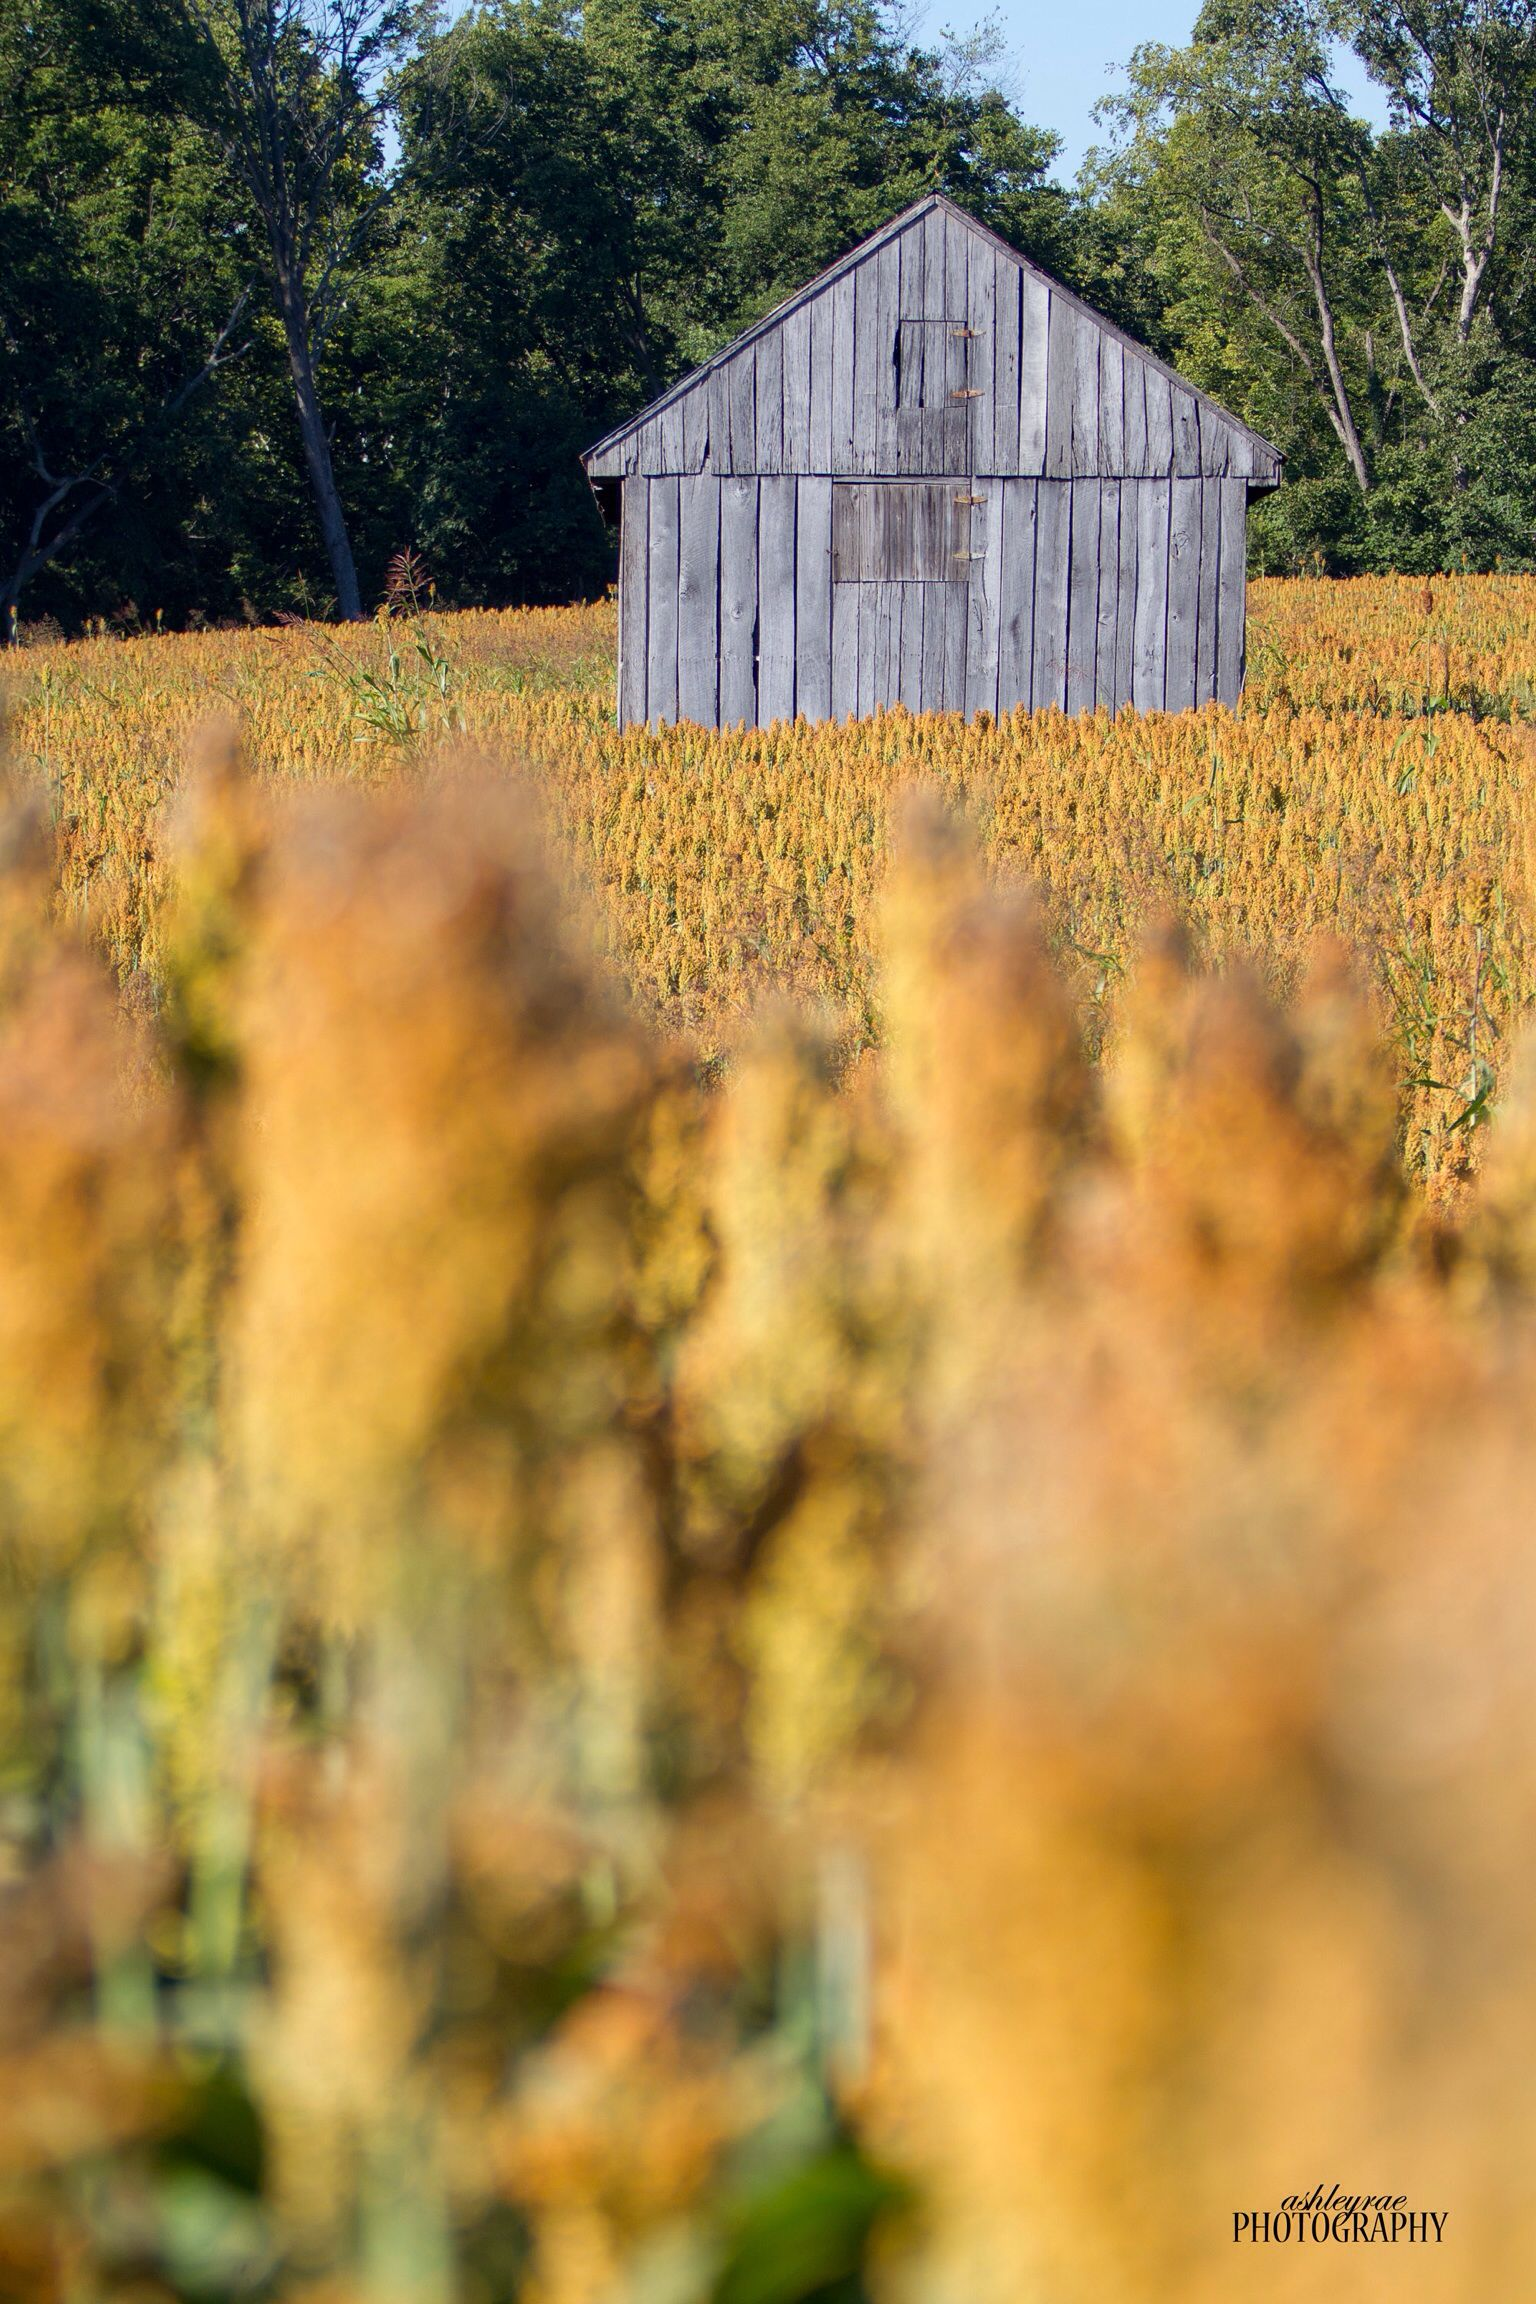 #Barn #Focus #Blurred #Sorghum #Milo #Country #CountryLife #Crop #Crops #Outdoor #Perfection #Love #Pretty #Fall #AshleyRaePhotography ©Ashley Rae Photography